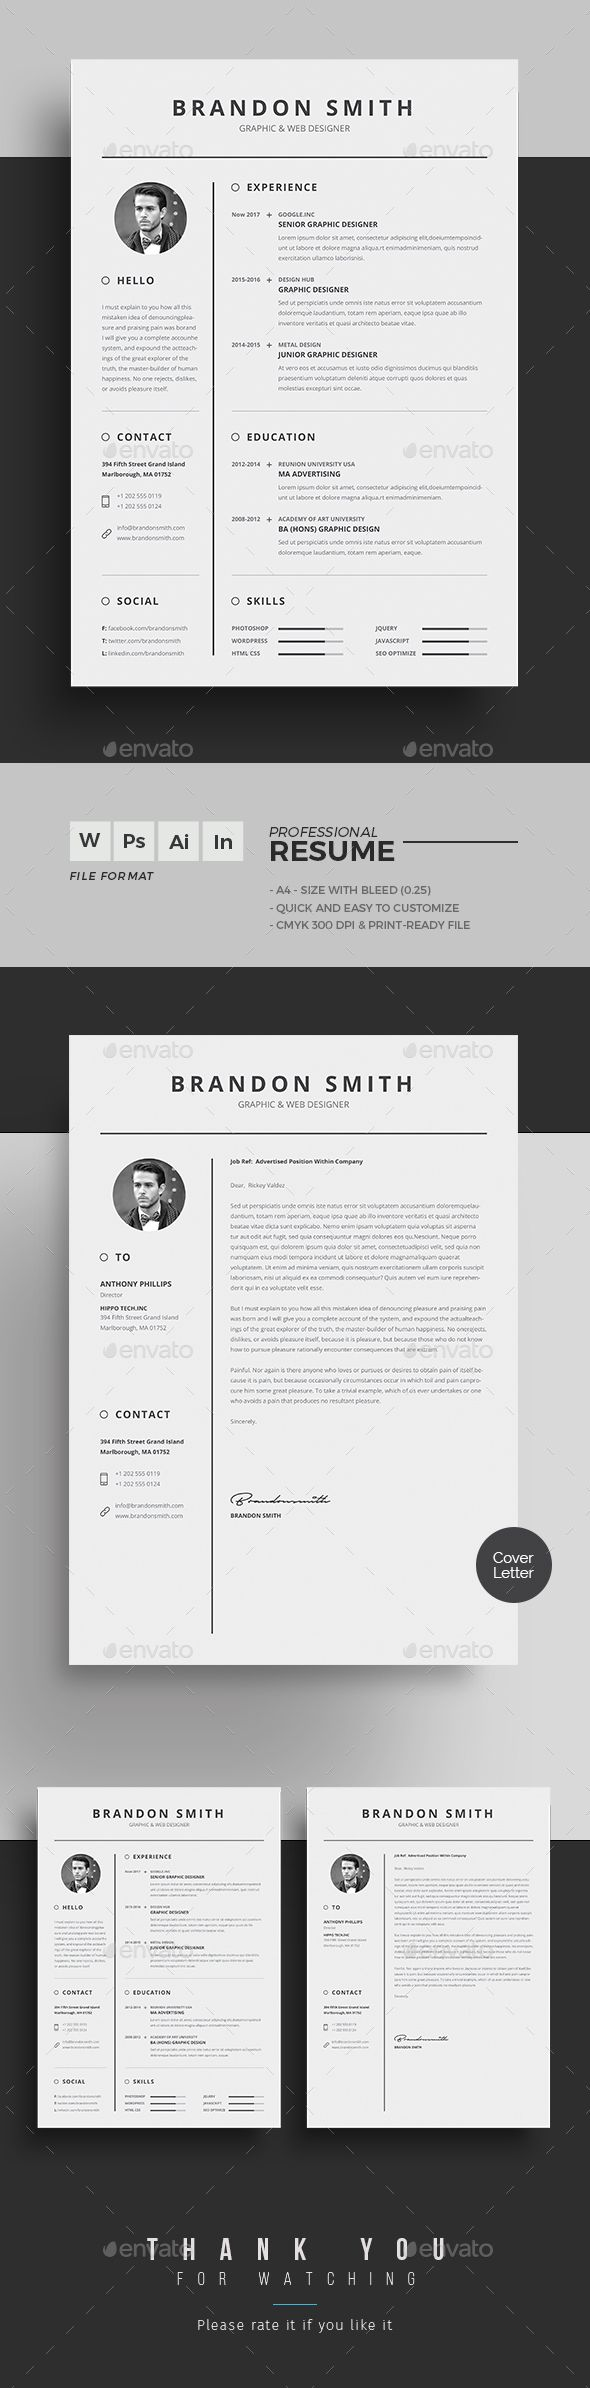 72 best Personal branding images on Pinterest | Resume, Personal ...